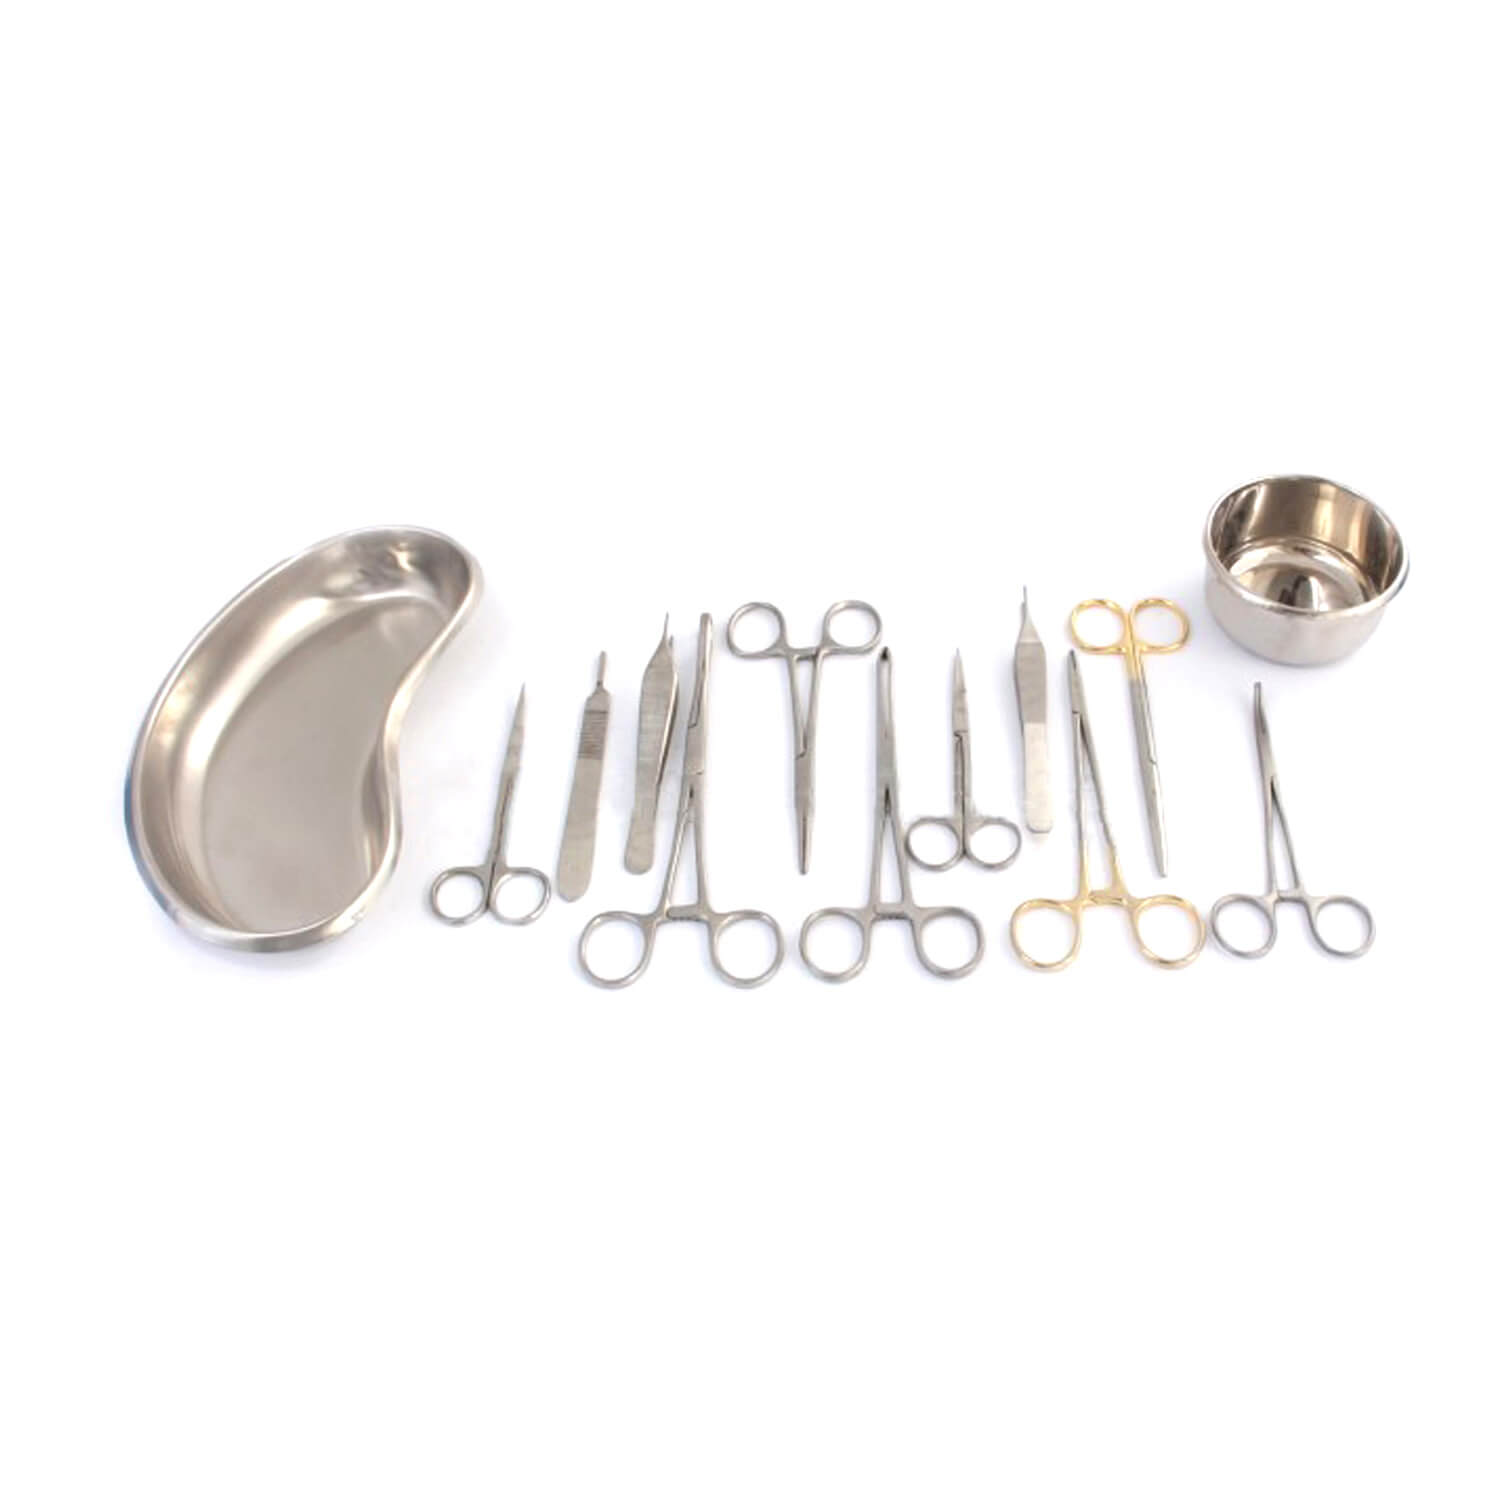 Tendon Repair Set